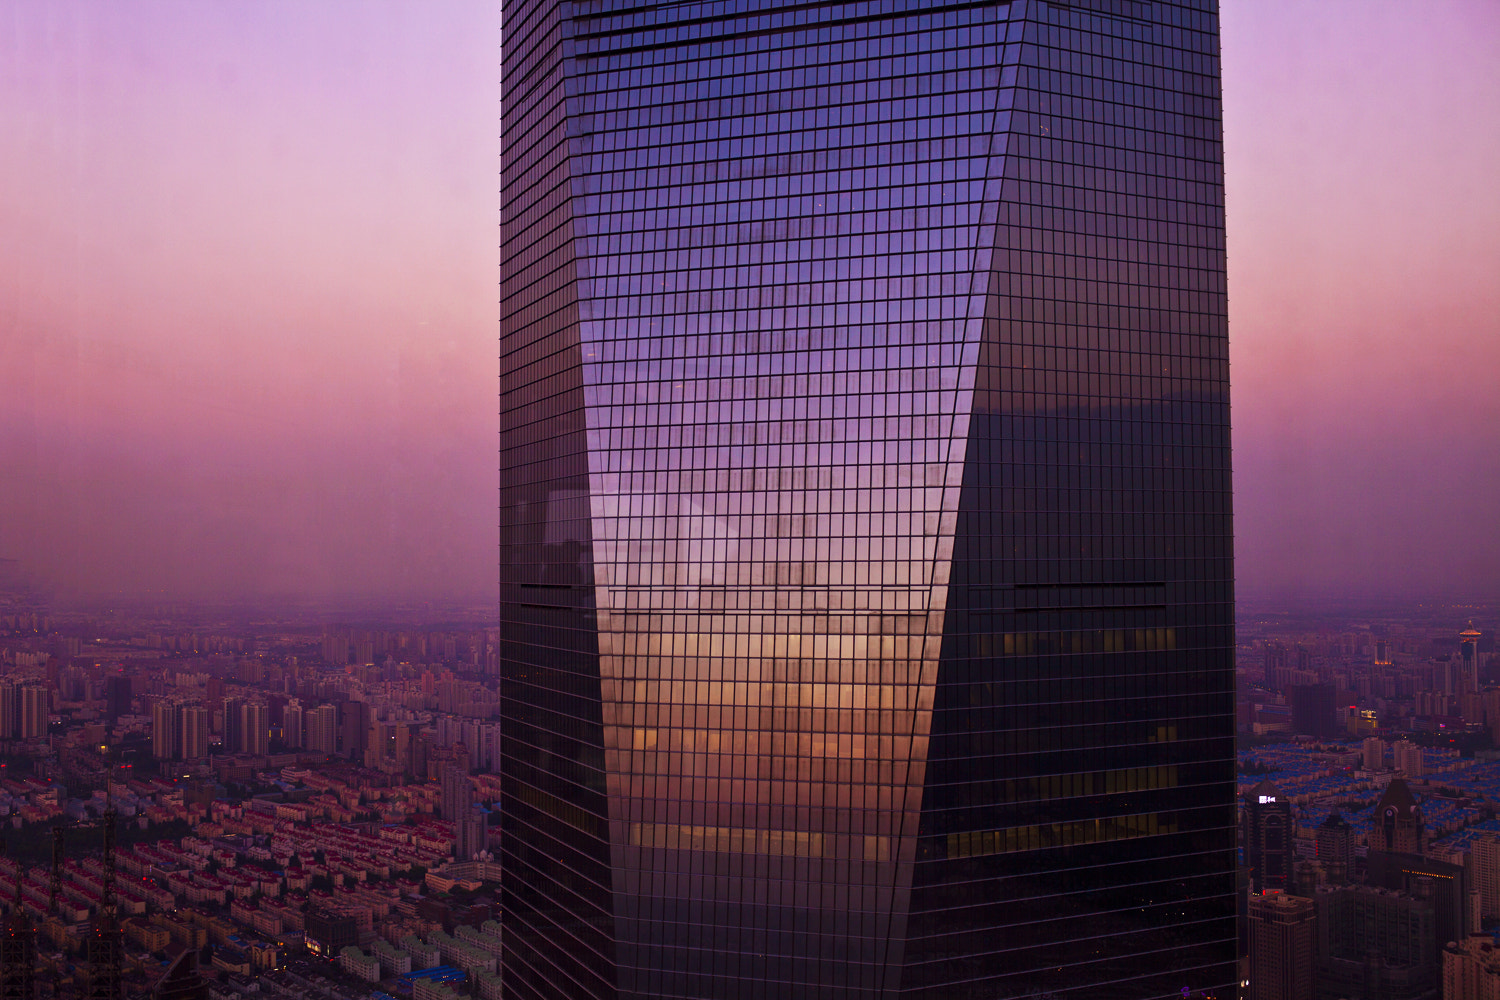 Photograph Shanghai Financial Center by MG Moscatello on 500px